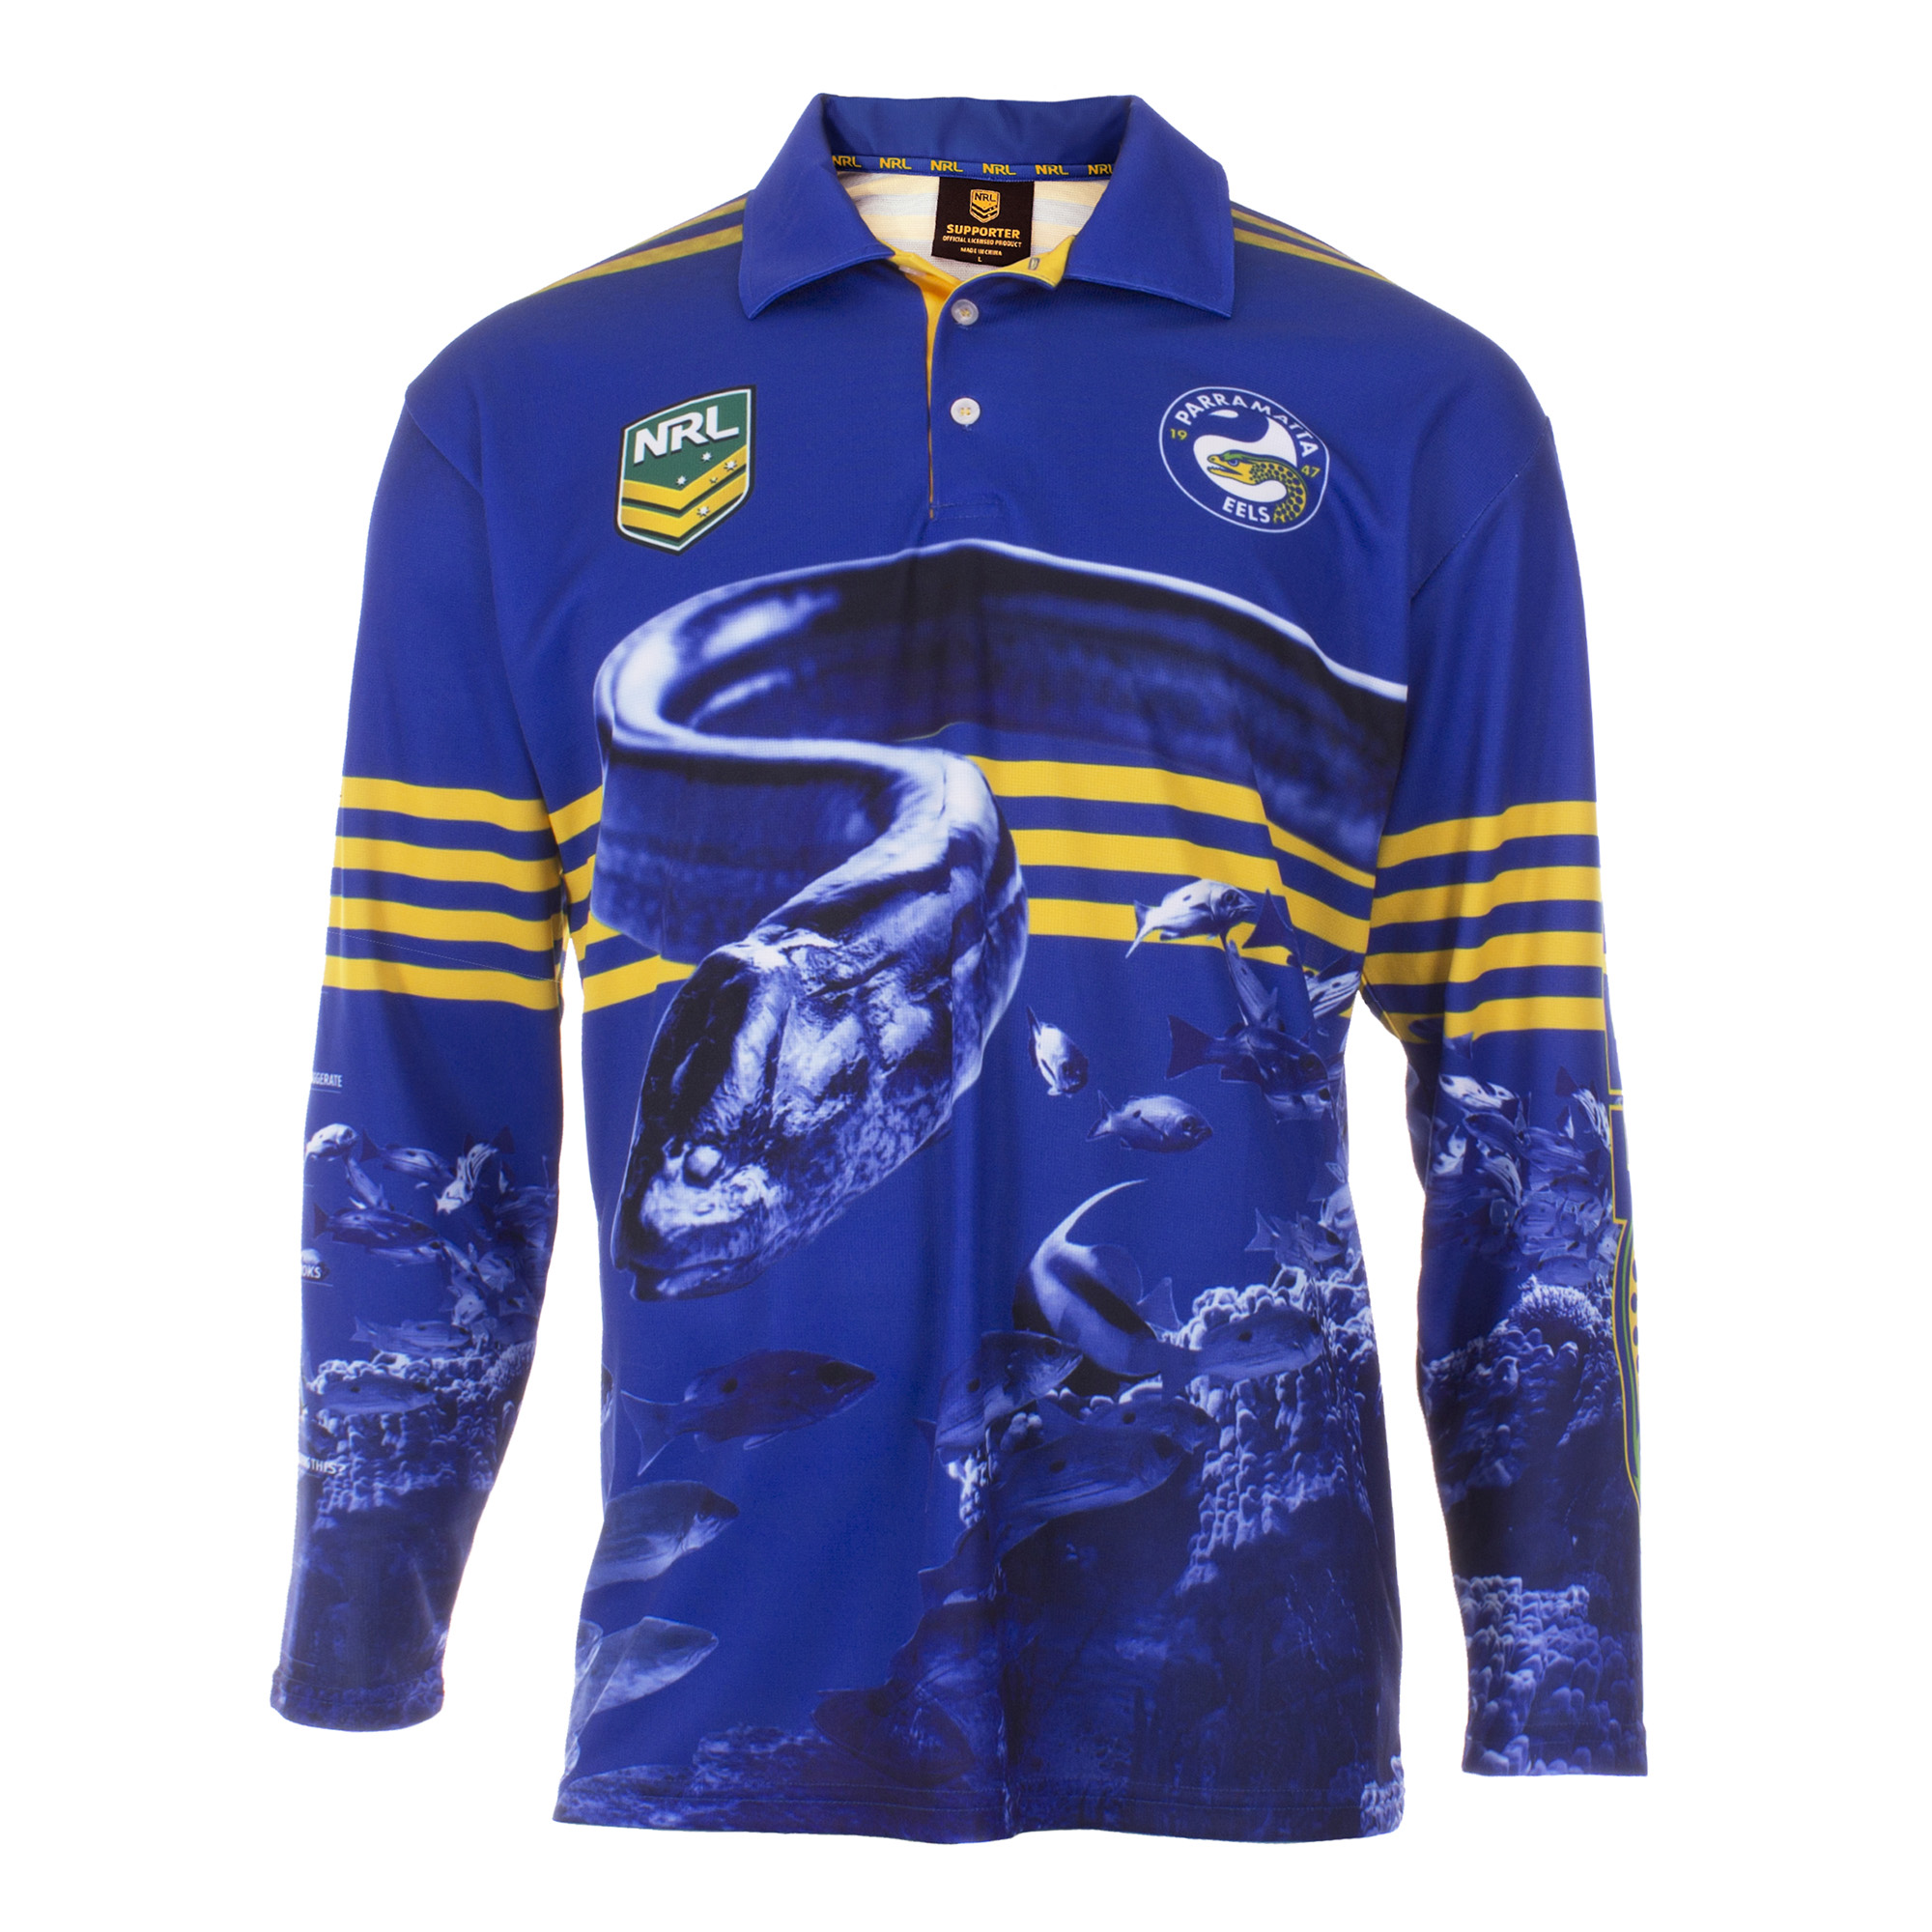 Personalised NRL Parramatta Eels Fishing Shirt - Front Personalisation